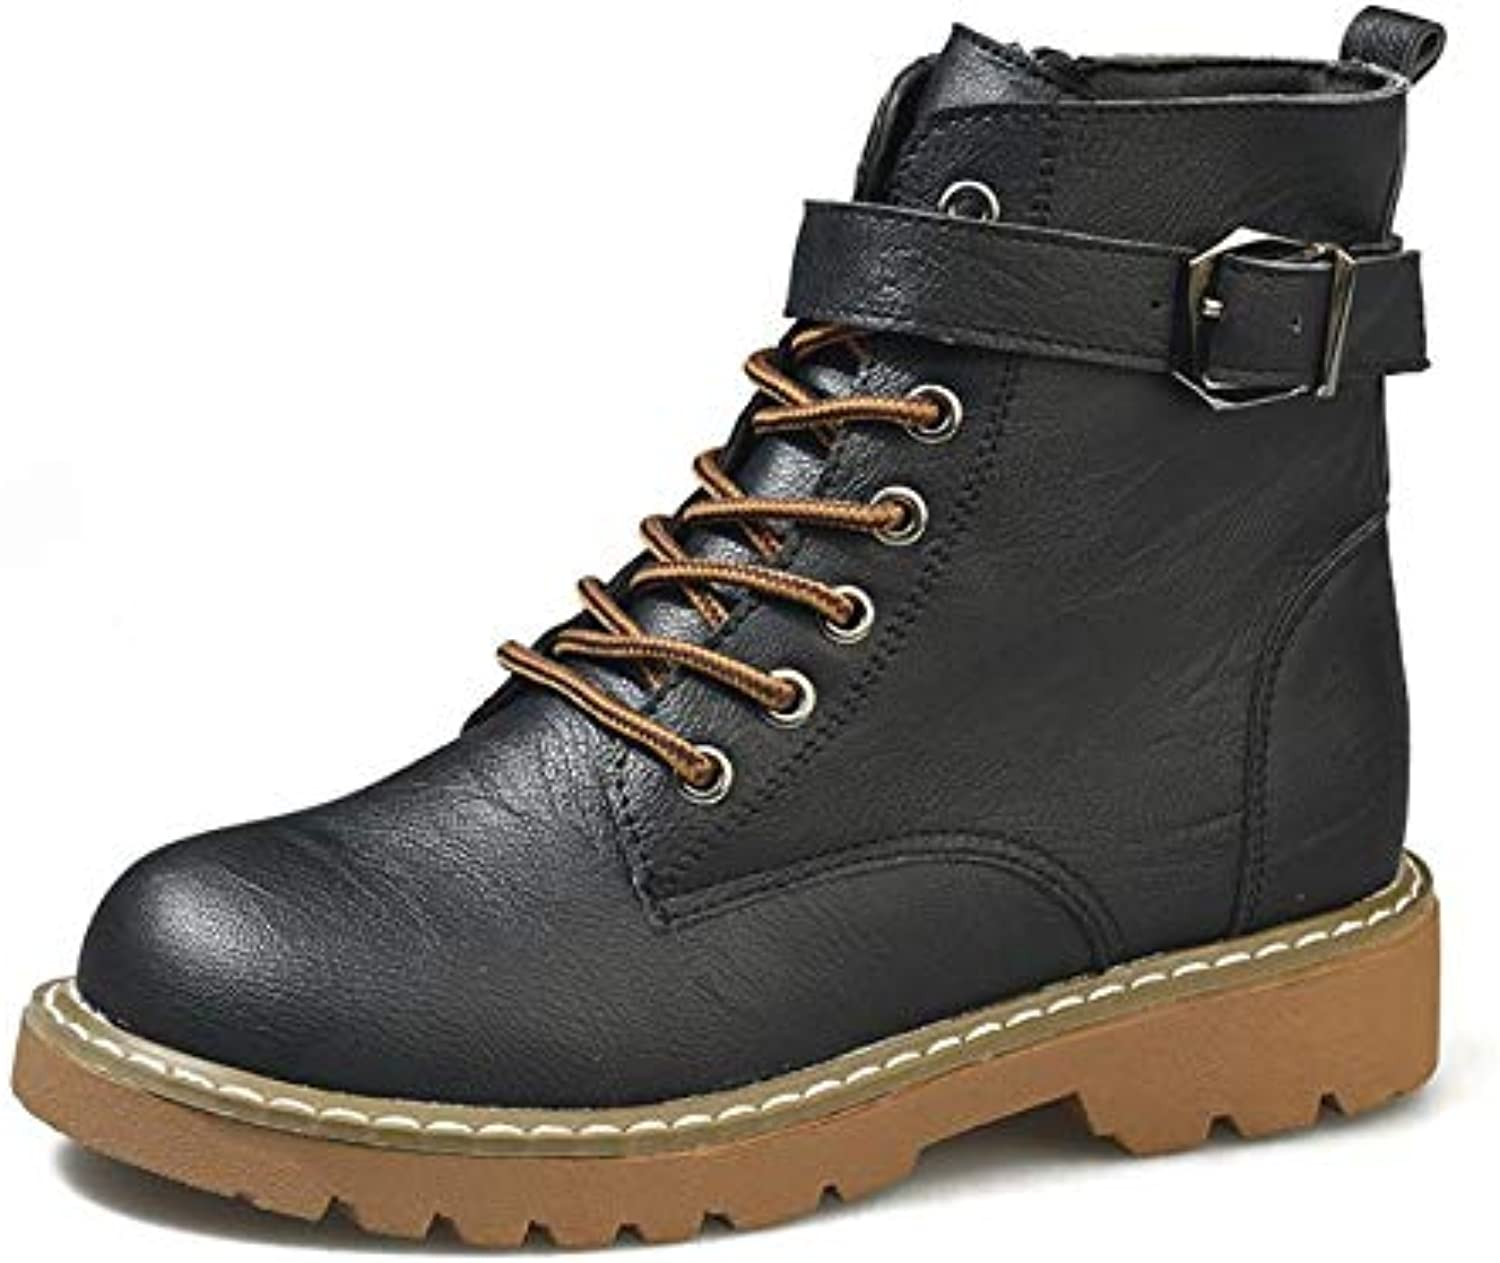 Meimeioo Womens Lace up Round Toe Low Heel Short Martin Boots Buckle Ankle Bootie